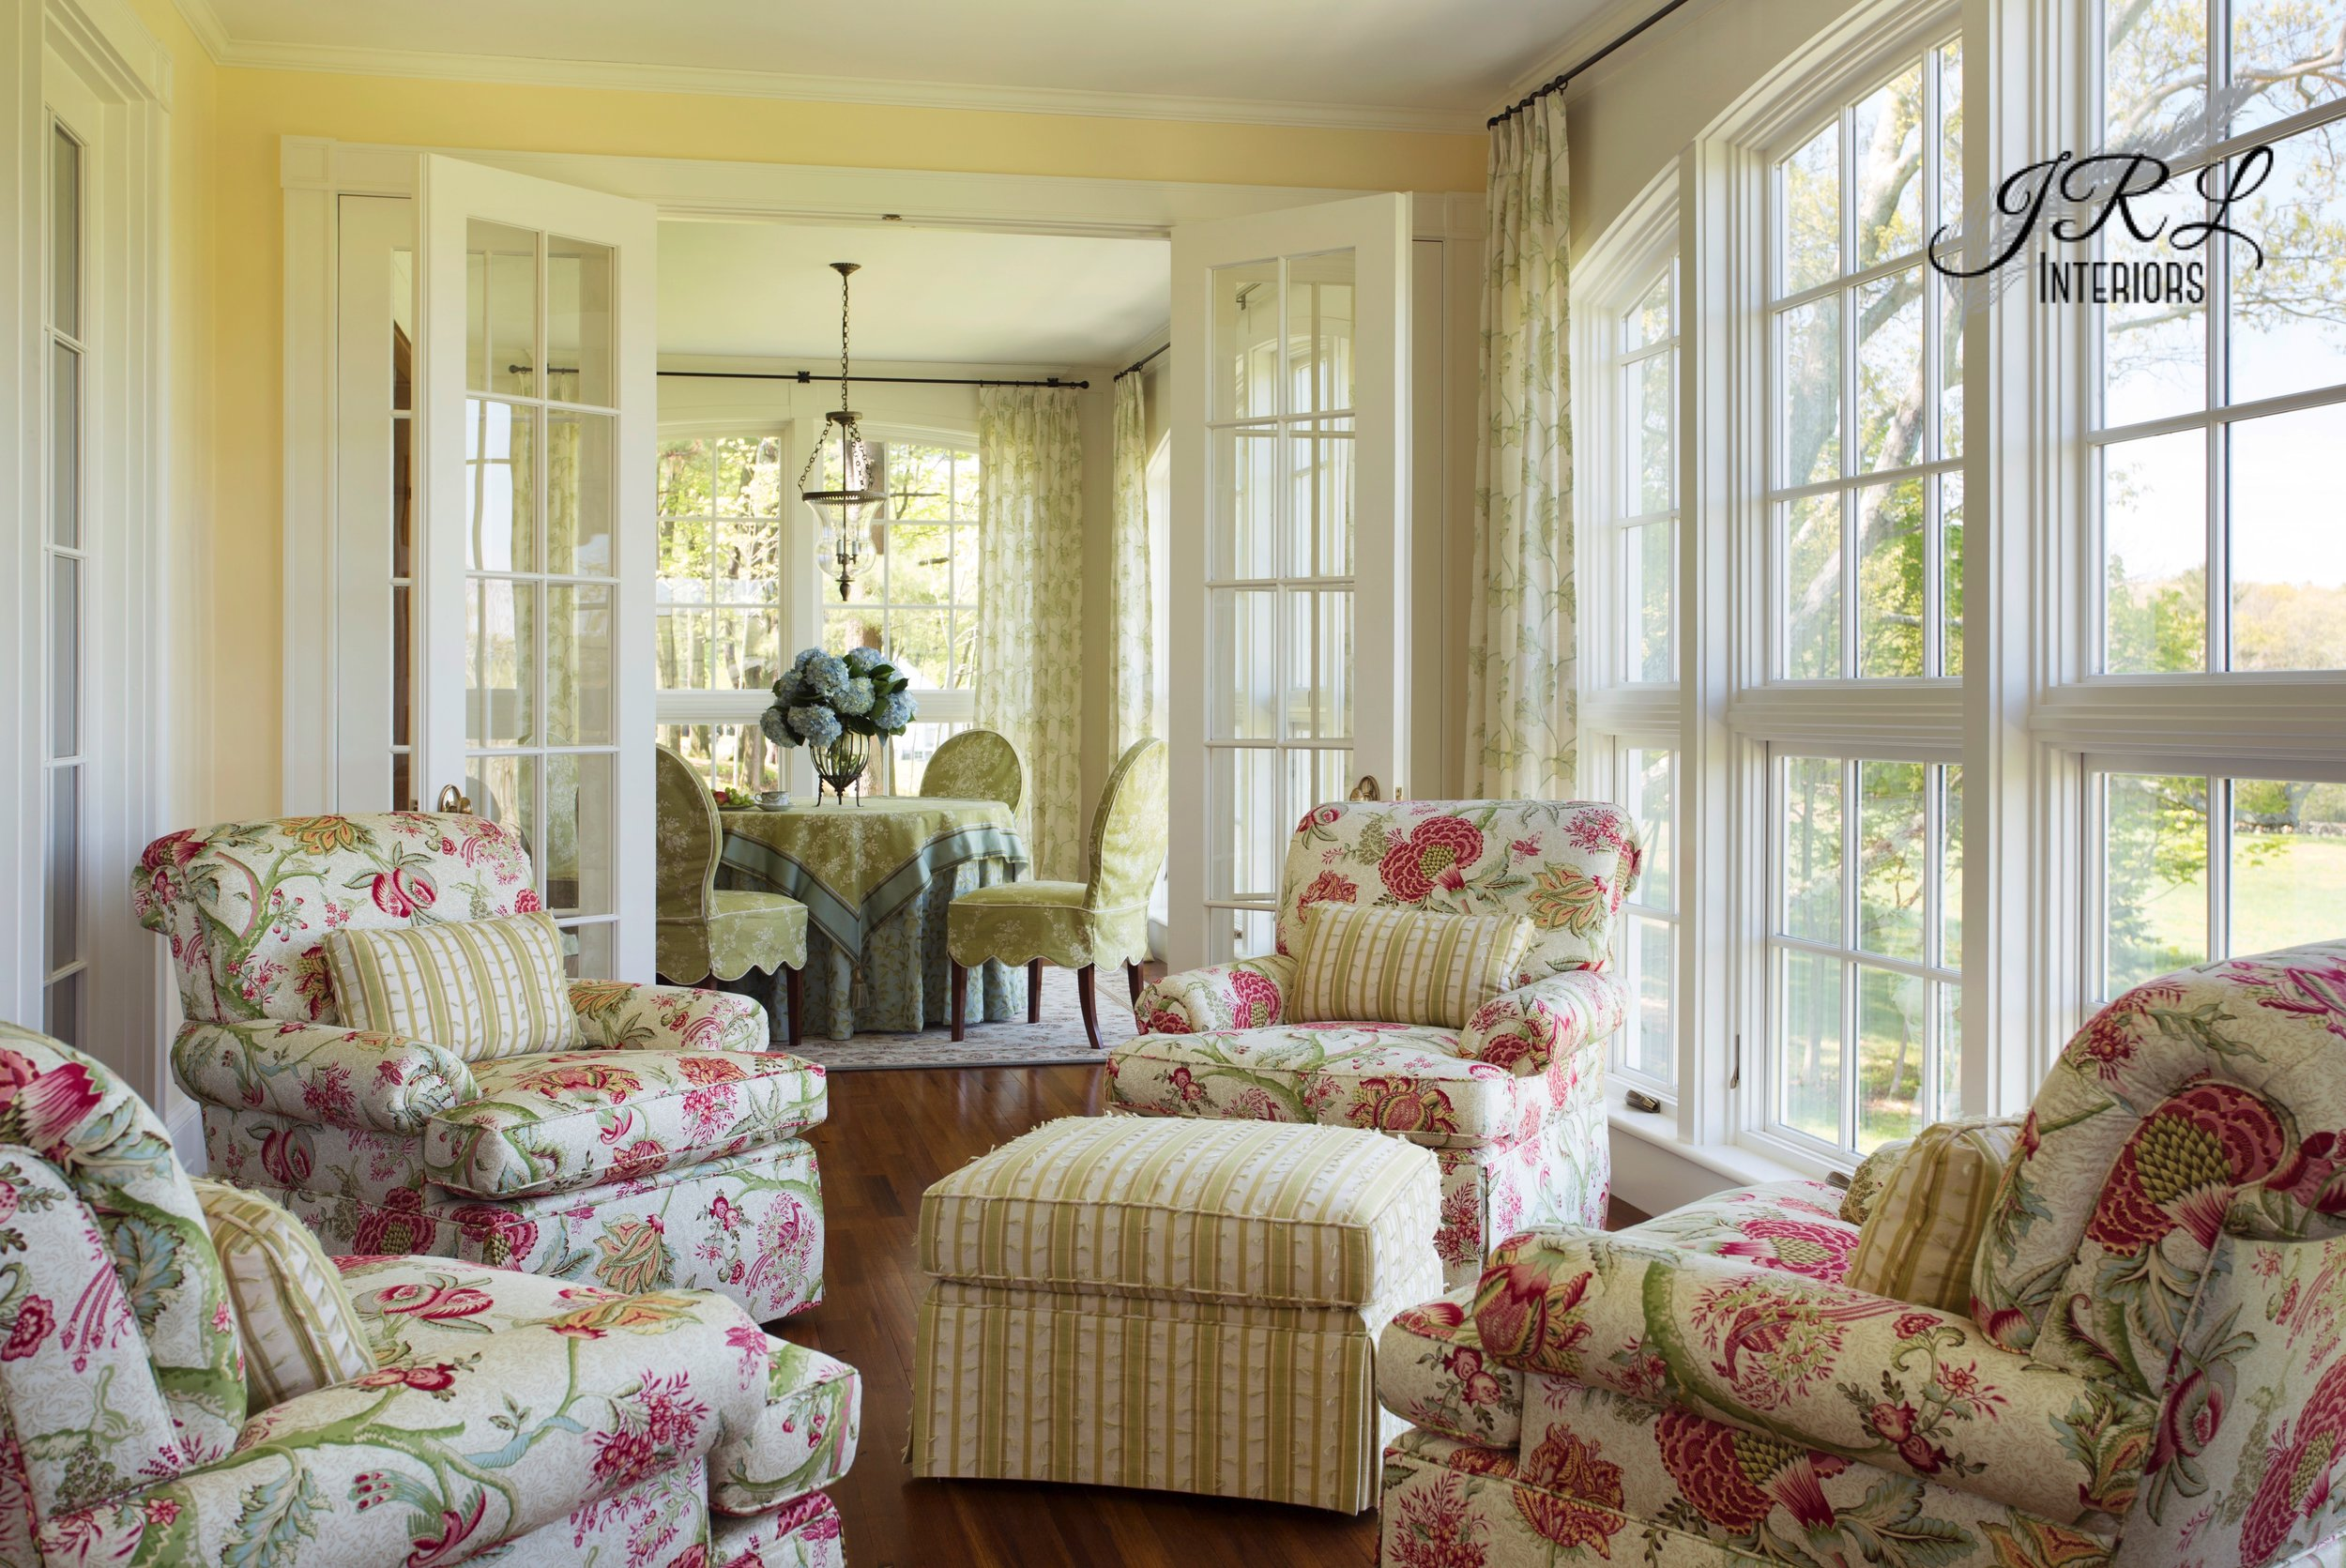 These sunny yellow walls and crisp white millwork provided a cheery backdrop for the riot of fresh spring colors in this sunroom space we designed several years ago.